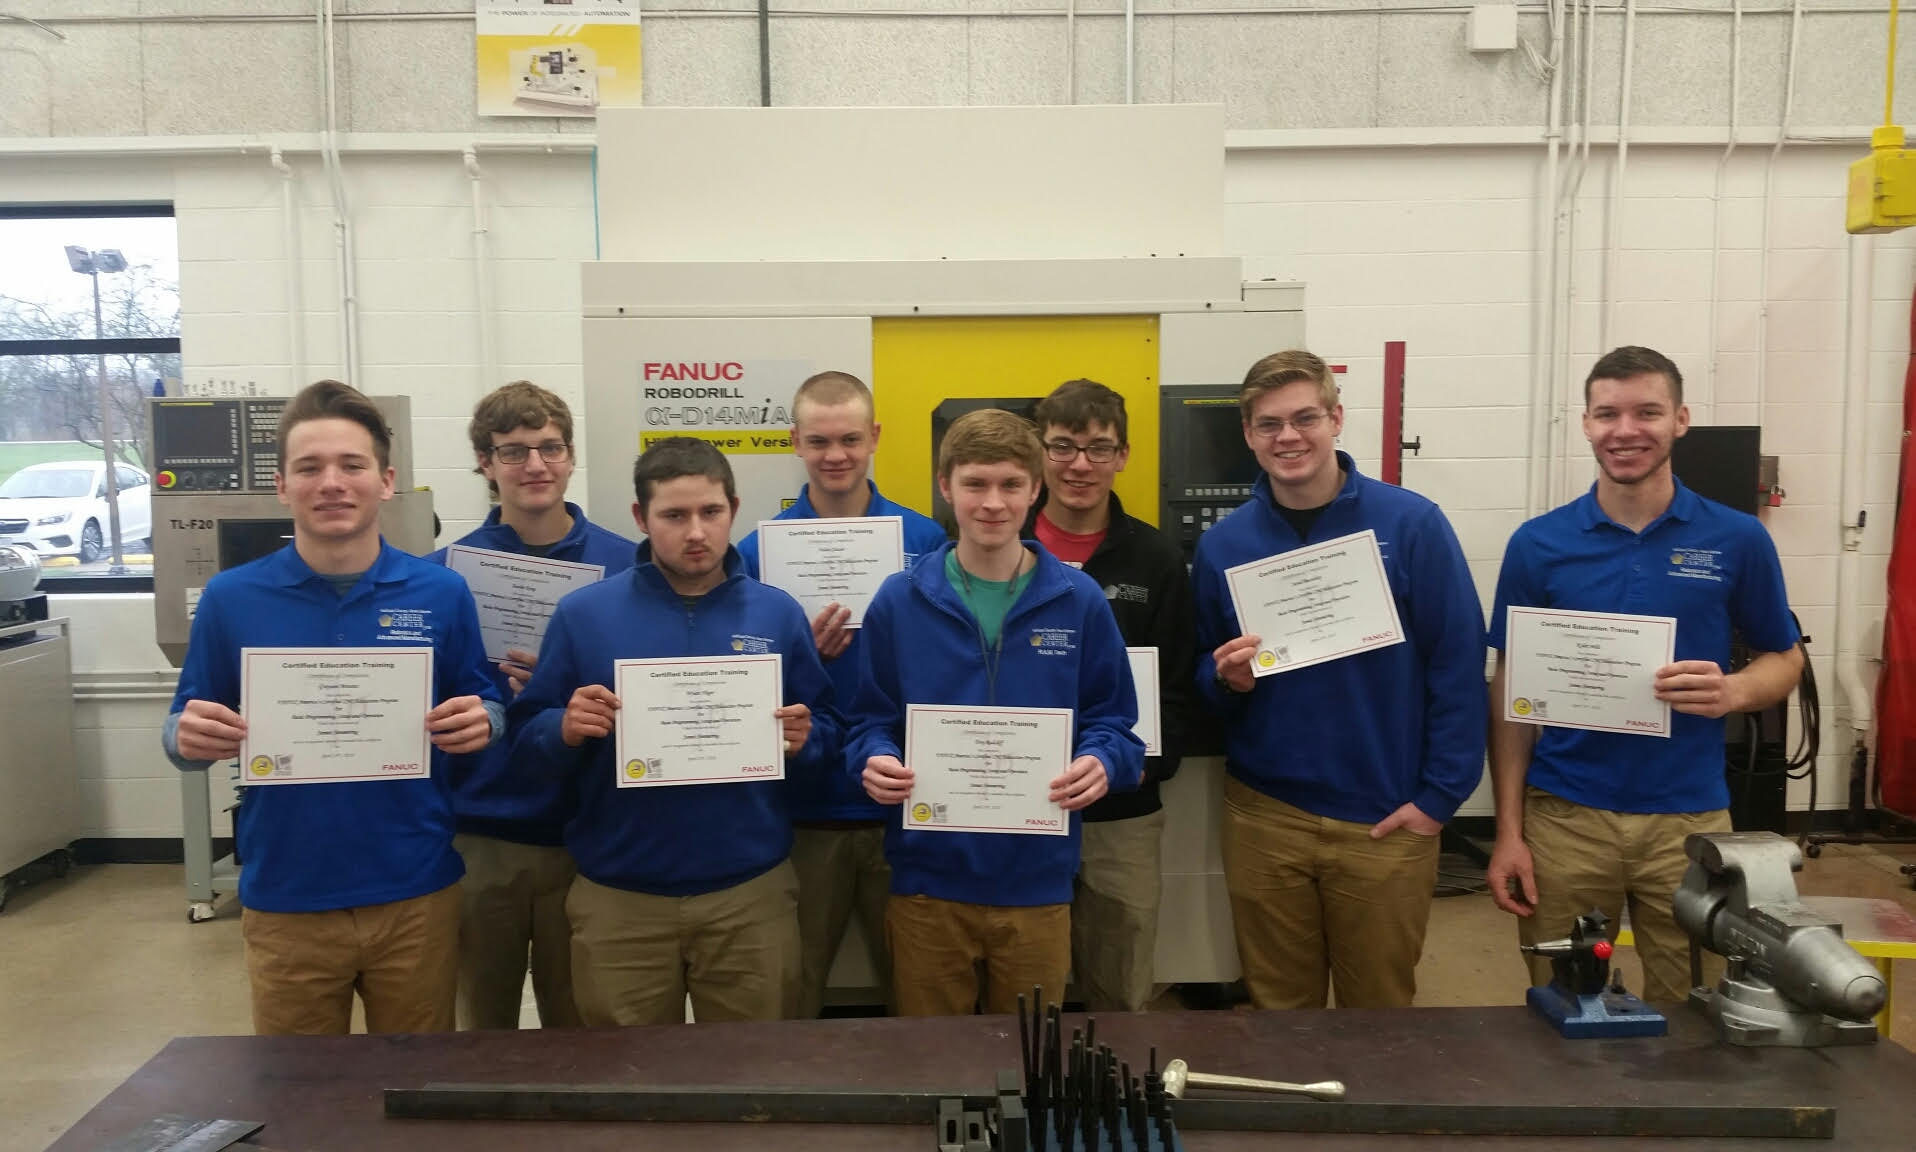 Congratulations RAMTEC students on receiving FANUC CNC Certification!